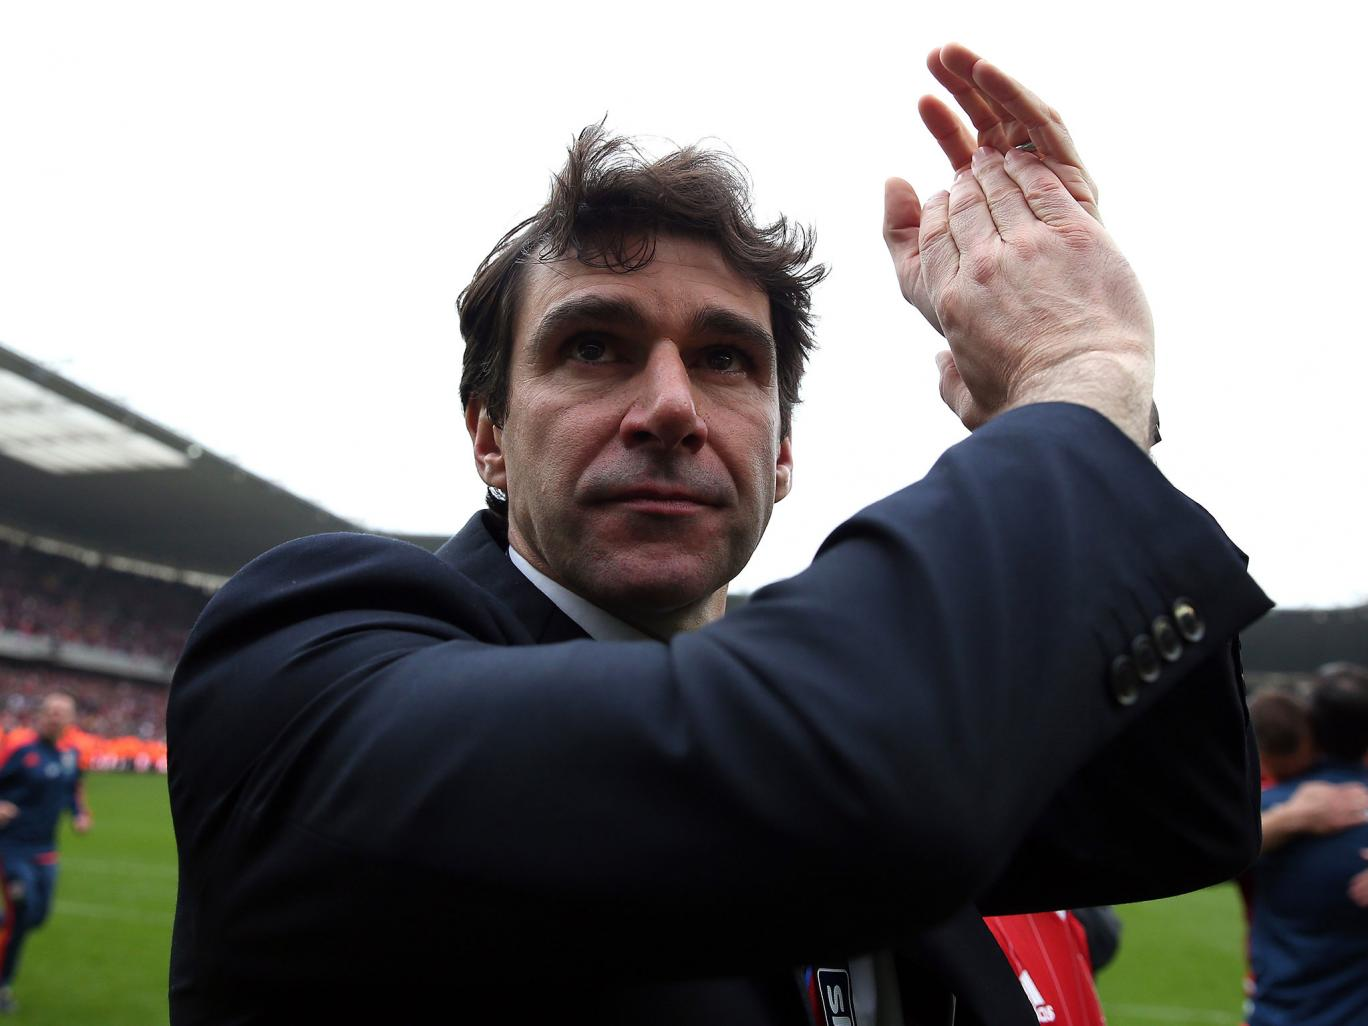 Karanka po awansie do Premier League | fot. independent.co.uk